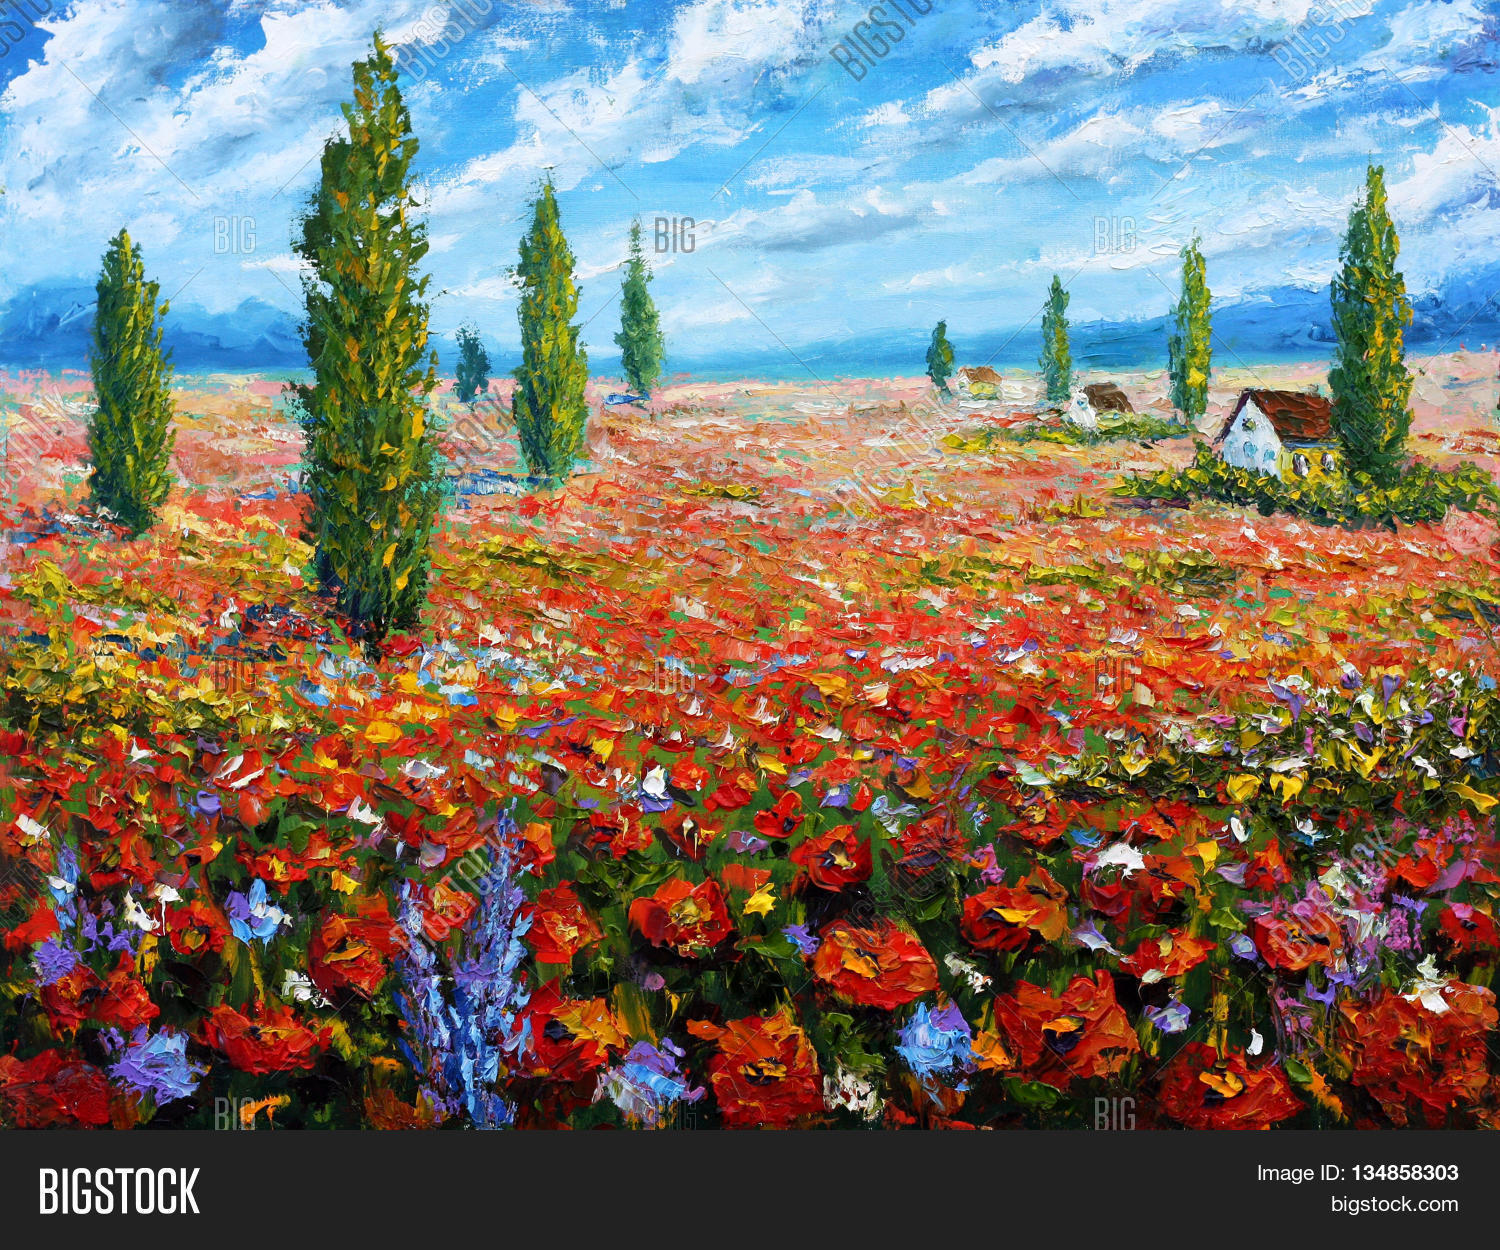 Flower painting field red poppies image photo bigstock flower painting field of red poppies original oil painting of flowers beautiful field flowers izmirmasajfo Image collections